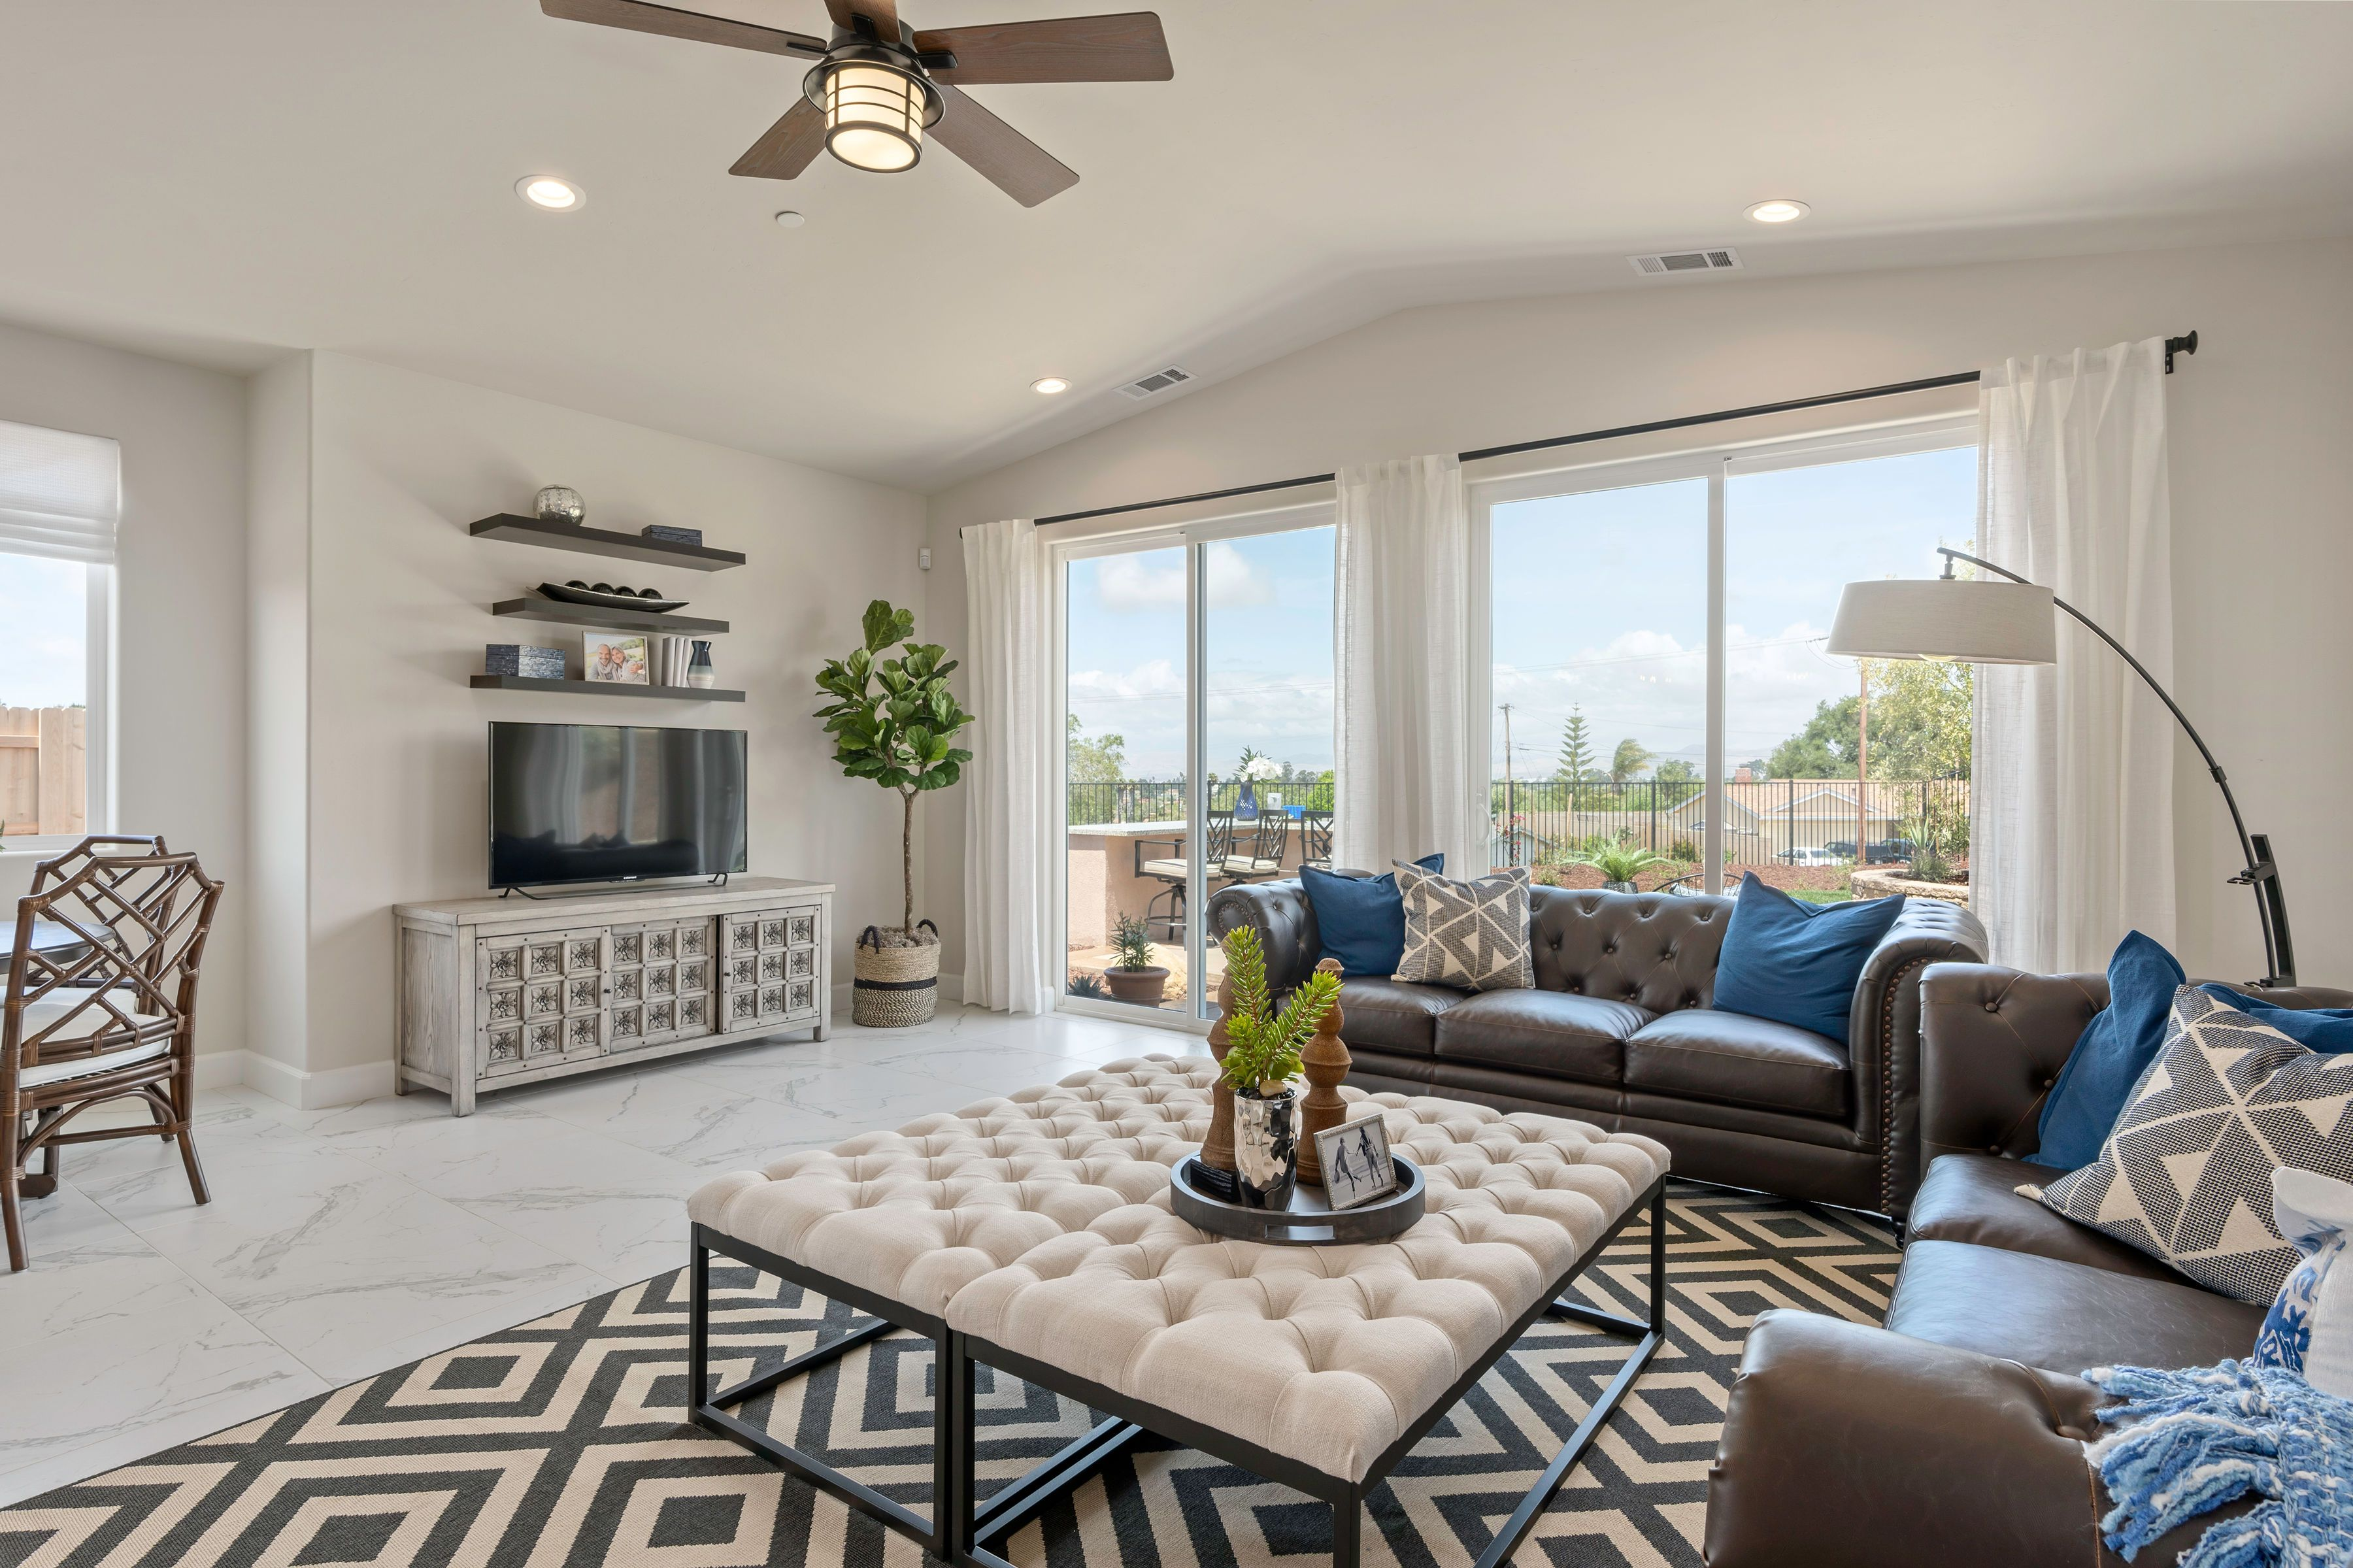 Living Area featured in the Hillsboro By Coastal Community Builders in Santa Barbara, CA